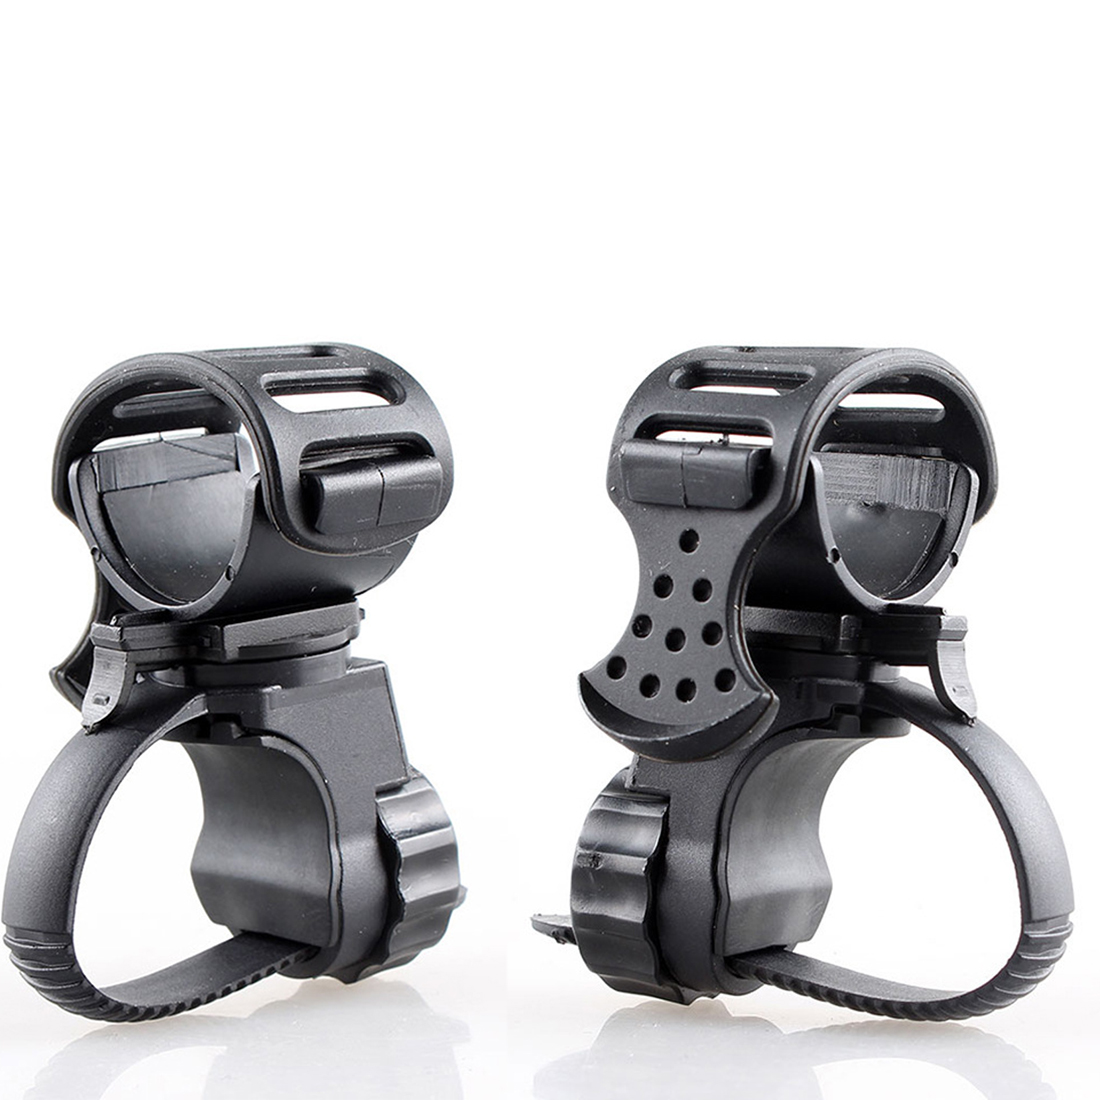 Hot Portable Cycling Bike Bicycle Light Lamp Stand Holder Rotation Grip LED Flashlight Torch Clamp Clip Mount Bisiklet Aksesuar